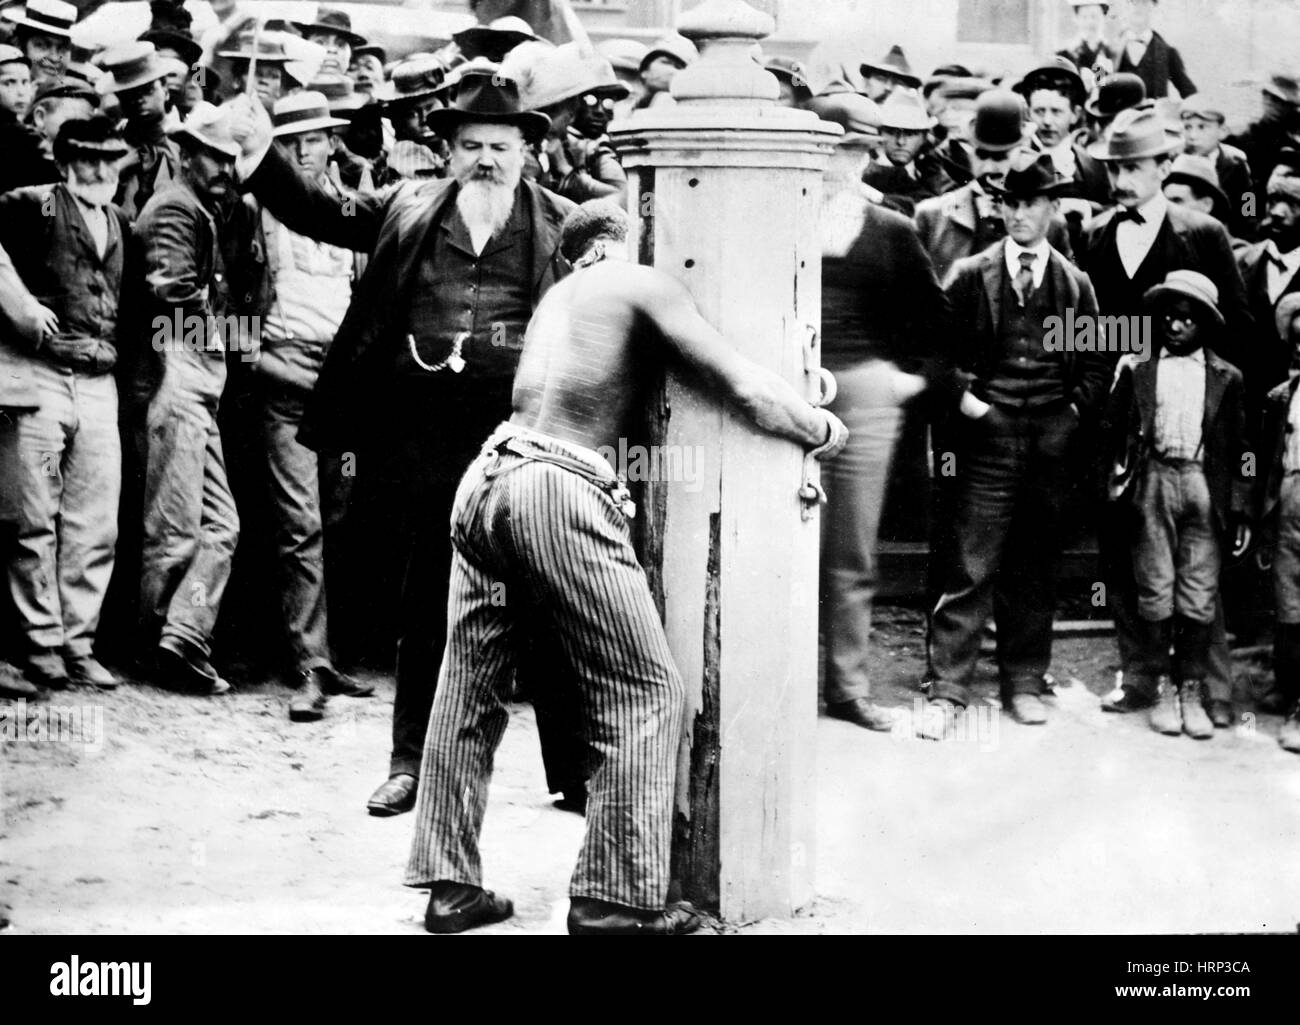 Whipping Post, 1900s Stock Photo